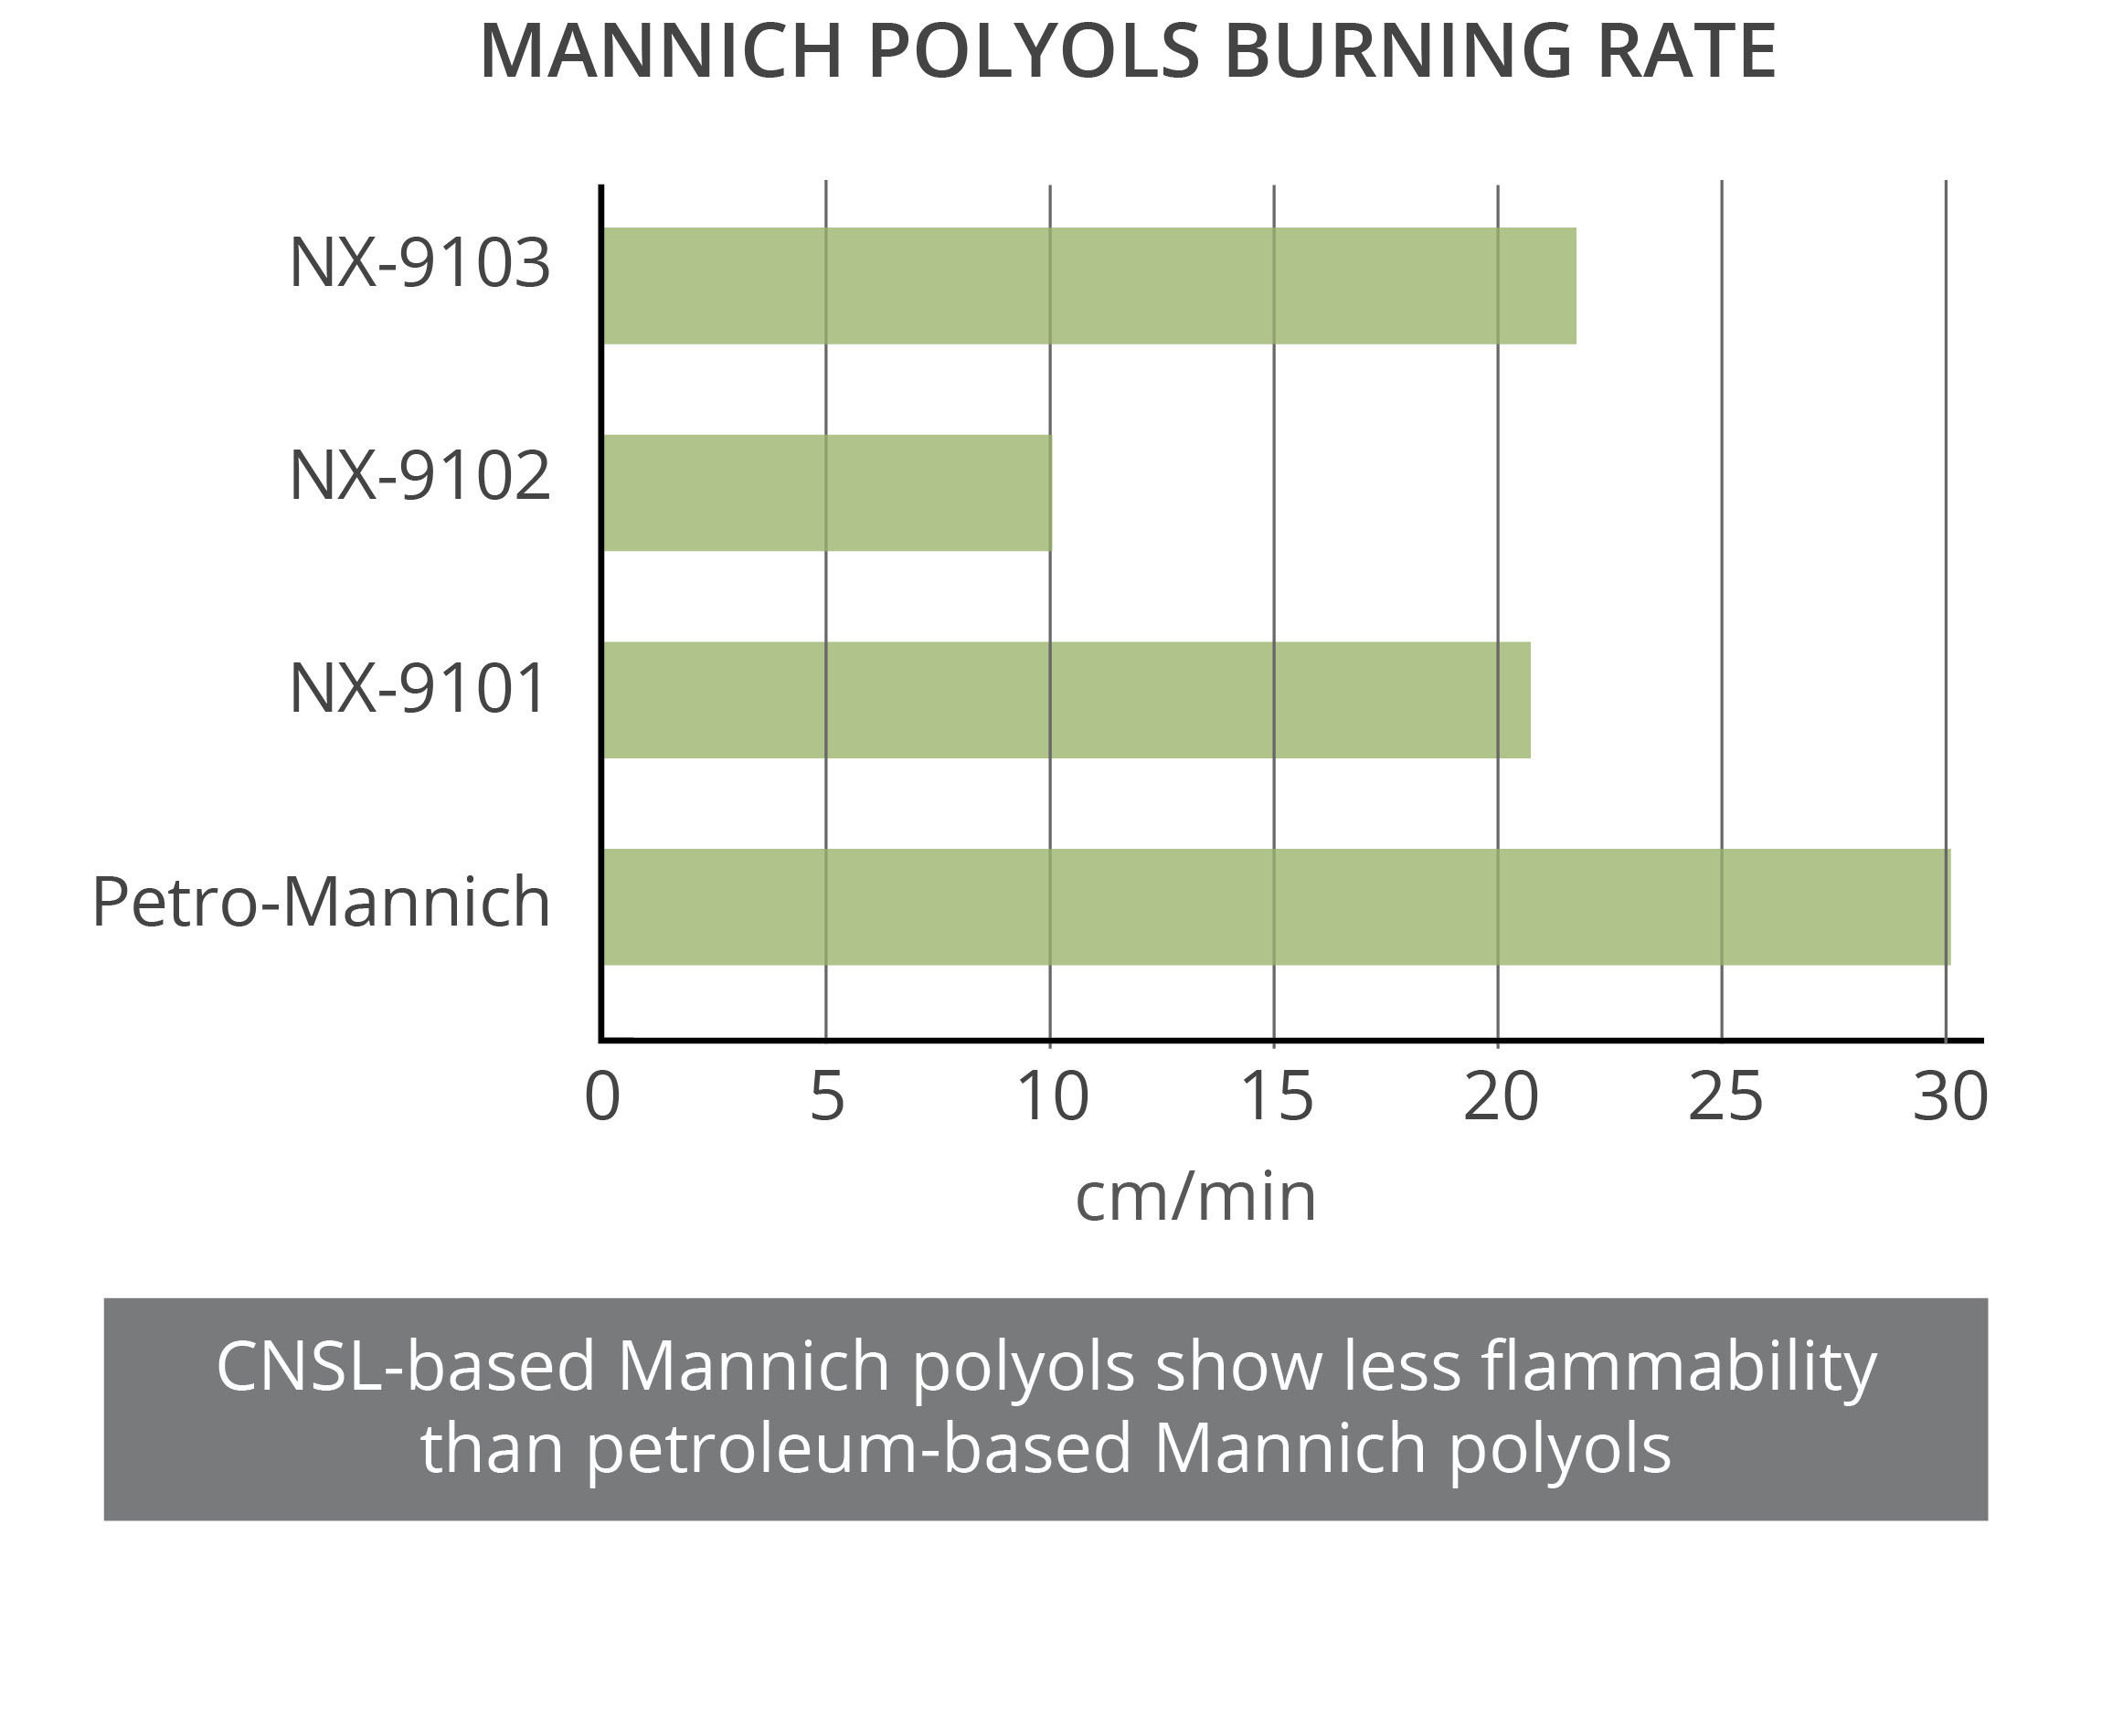 CNSL Mannich polyols provide good fire resistance with low burning rates in polyurethane rigid foams